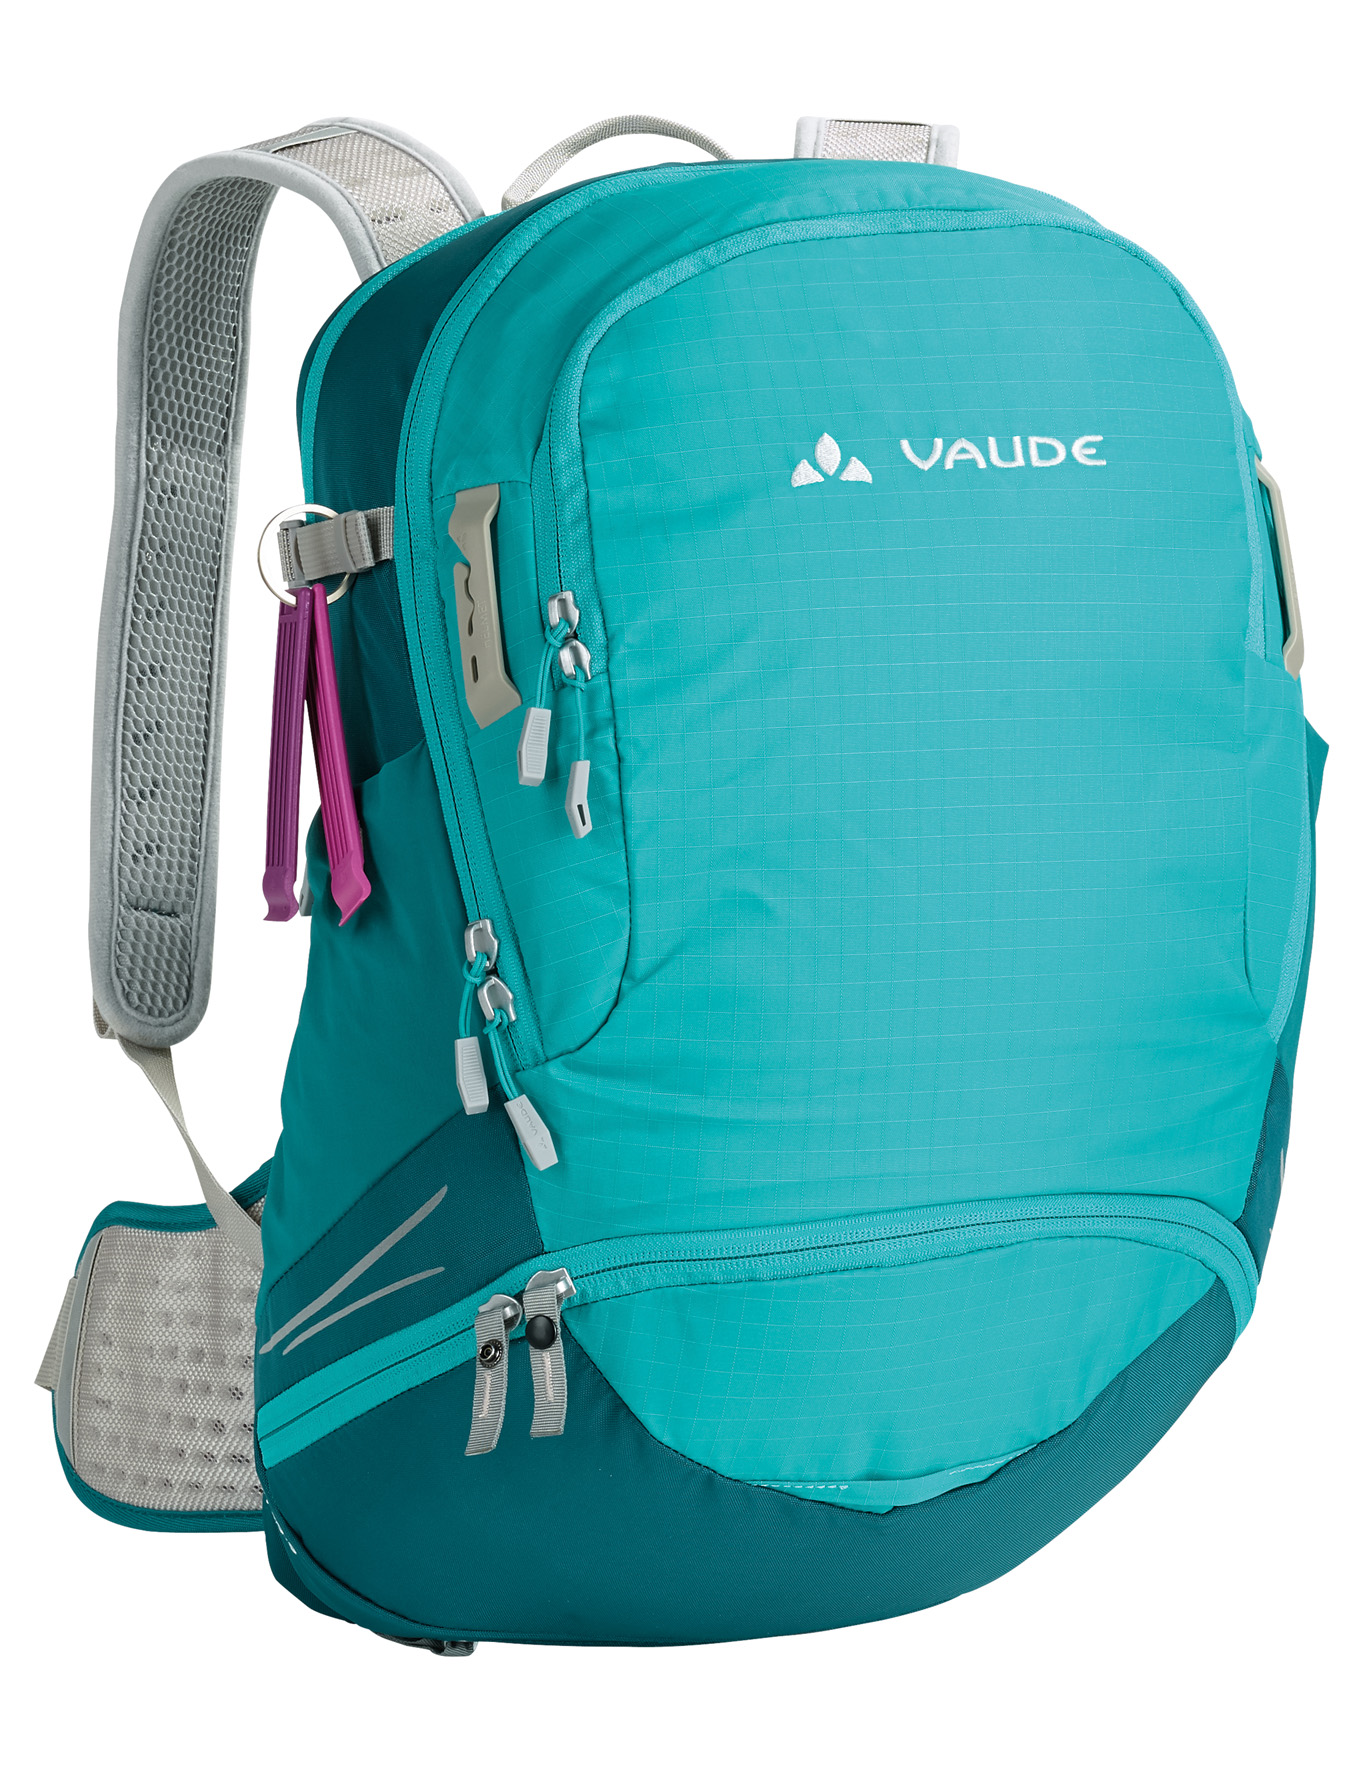 VAUDE Roomy 23+3 reef  - schneider-sports